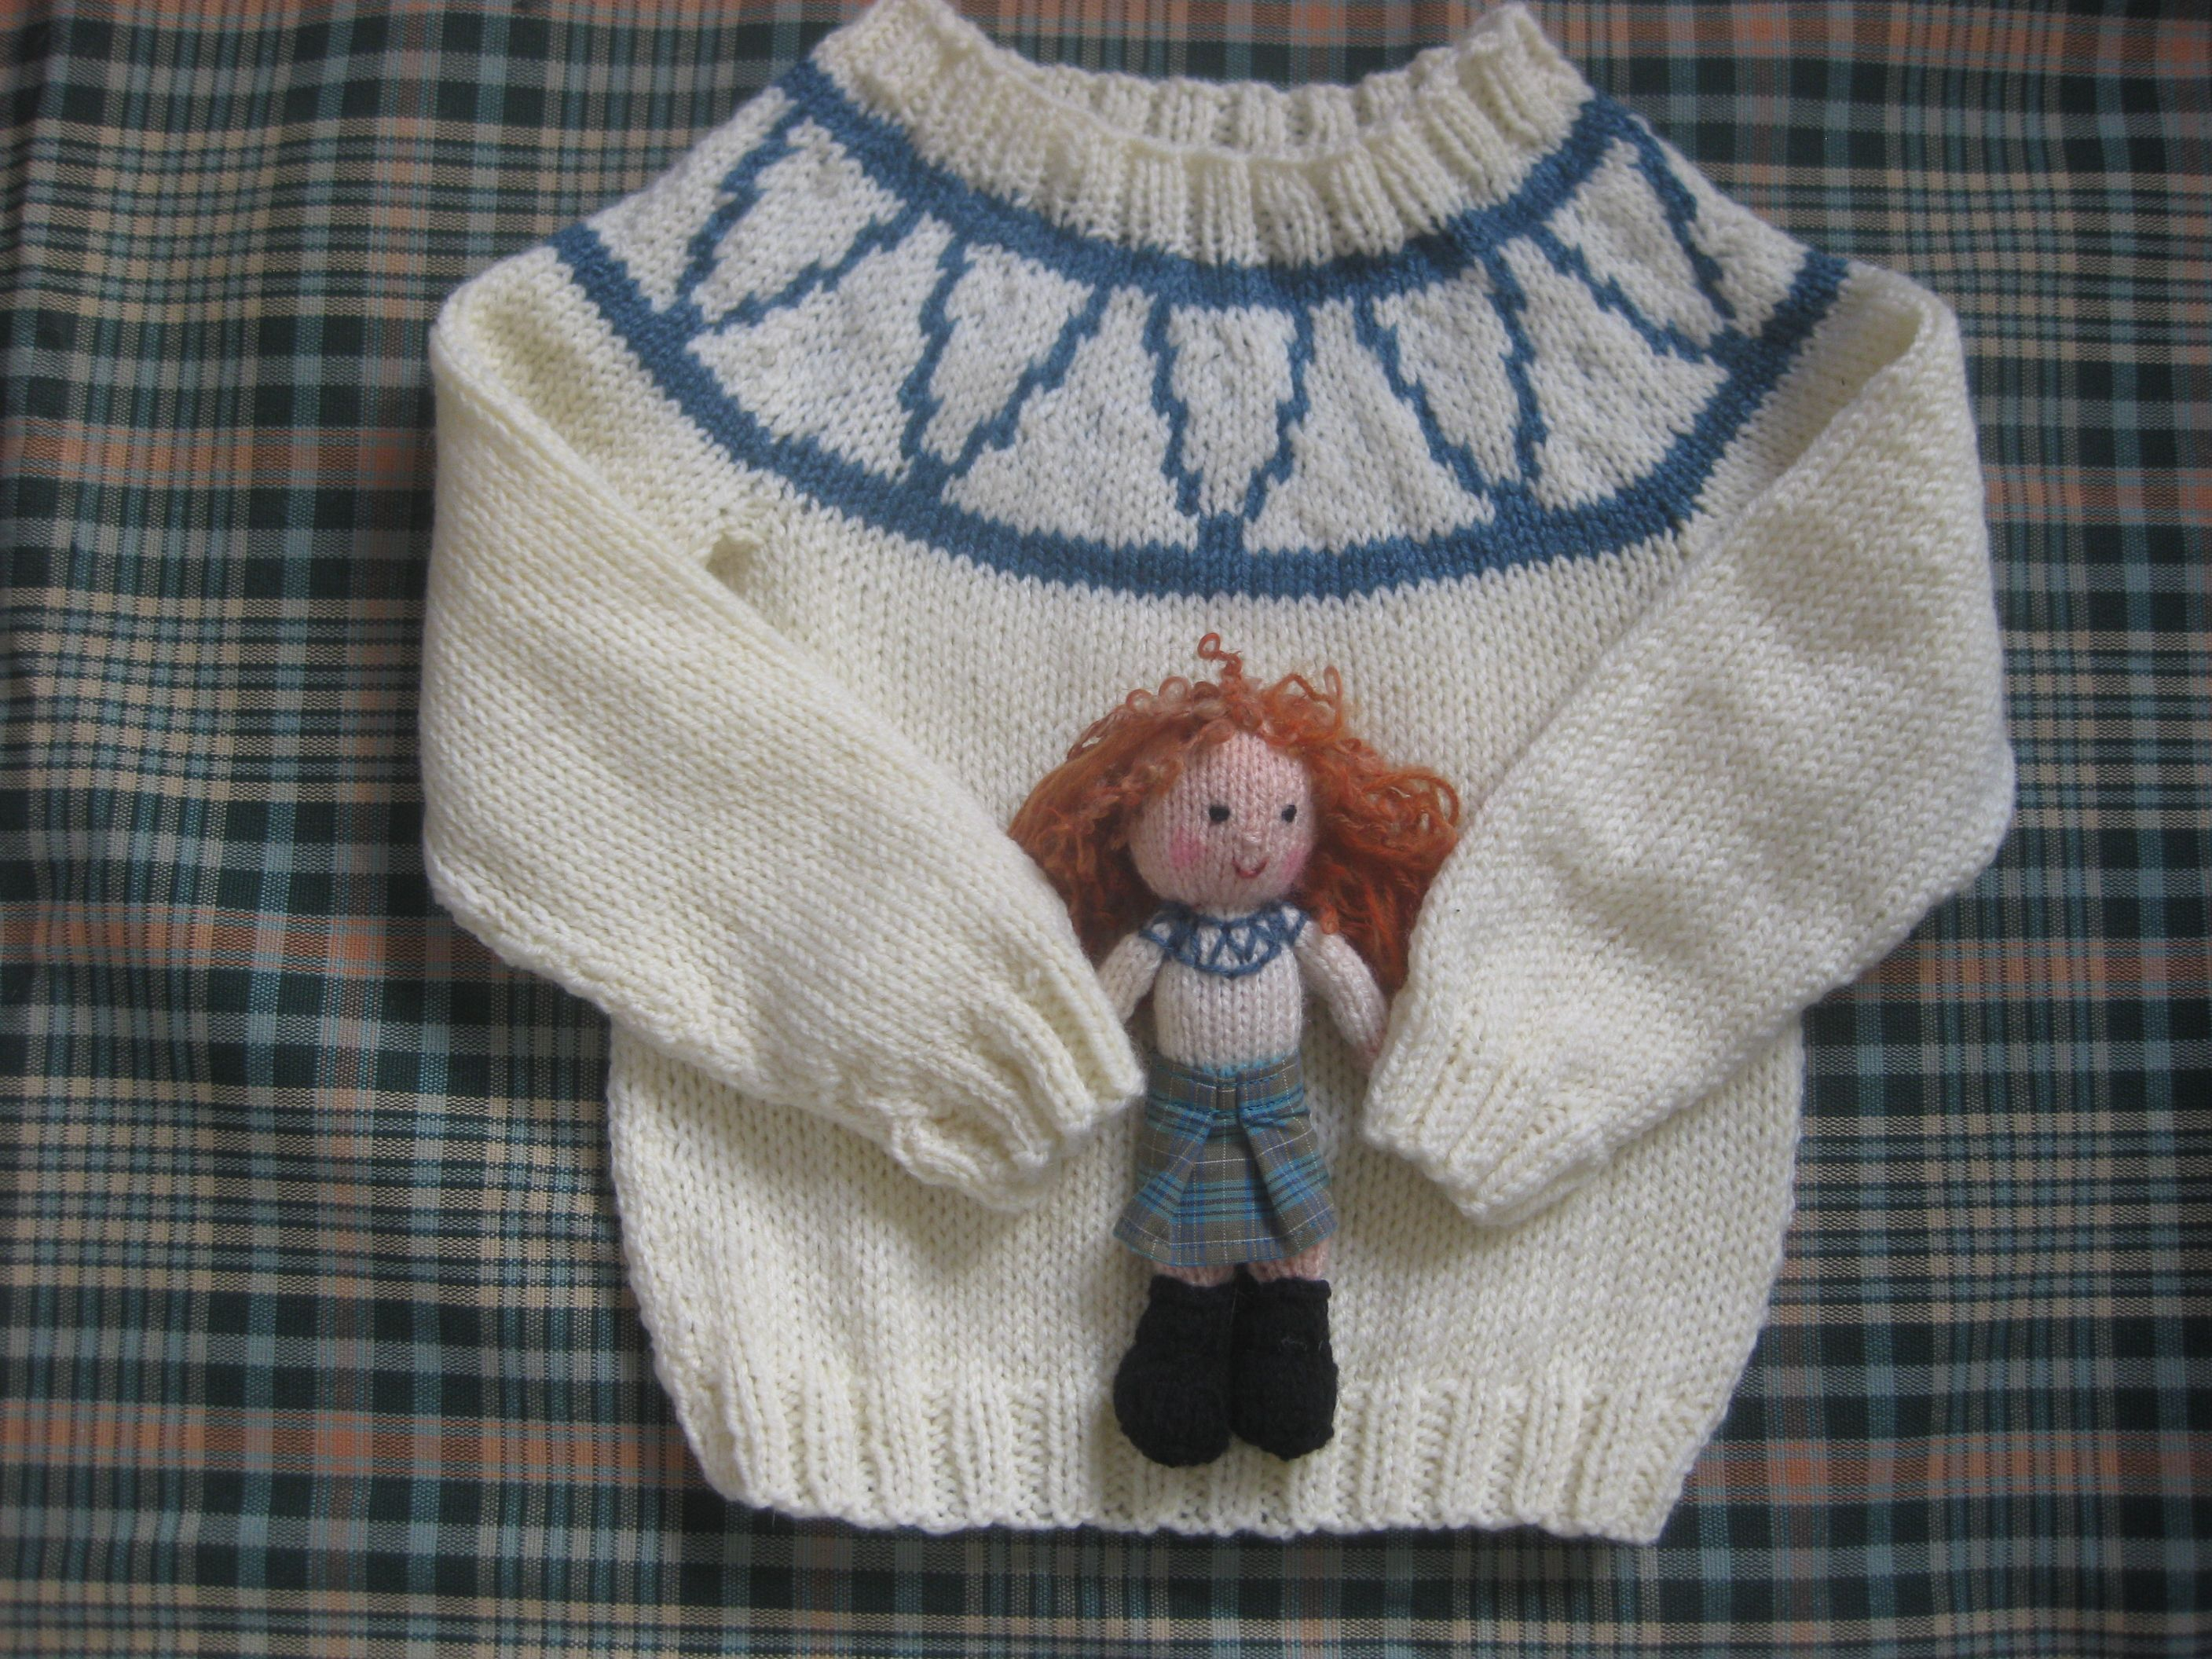 Katie morag inspired jumper and doll by kaypeeclothing baby katie morag inspired jumper and doll by kaypeeclothing bankloansurffo Images